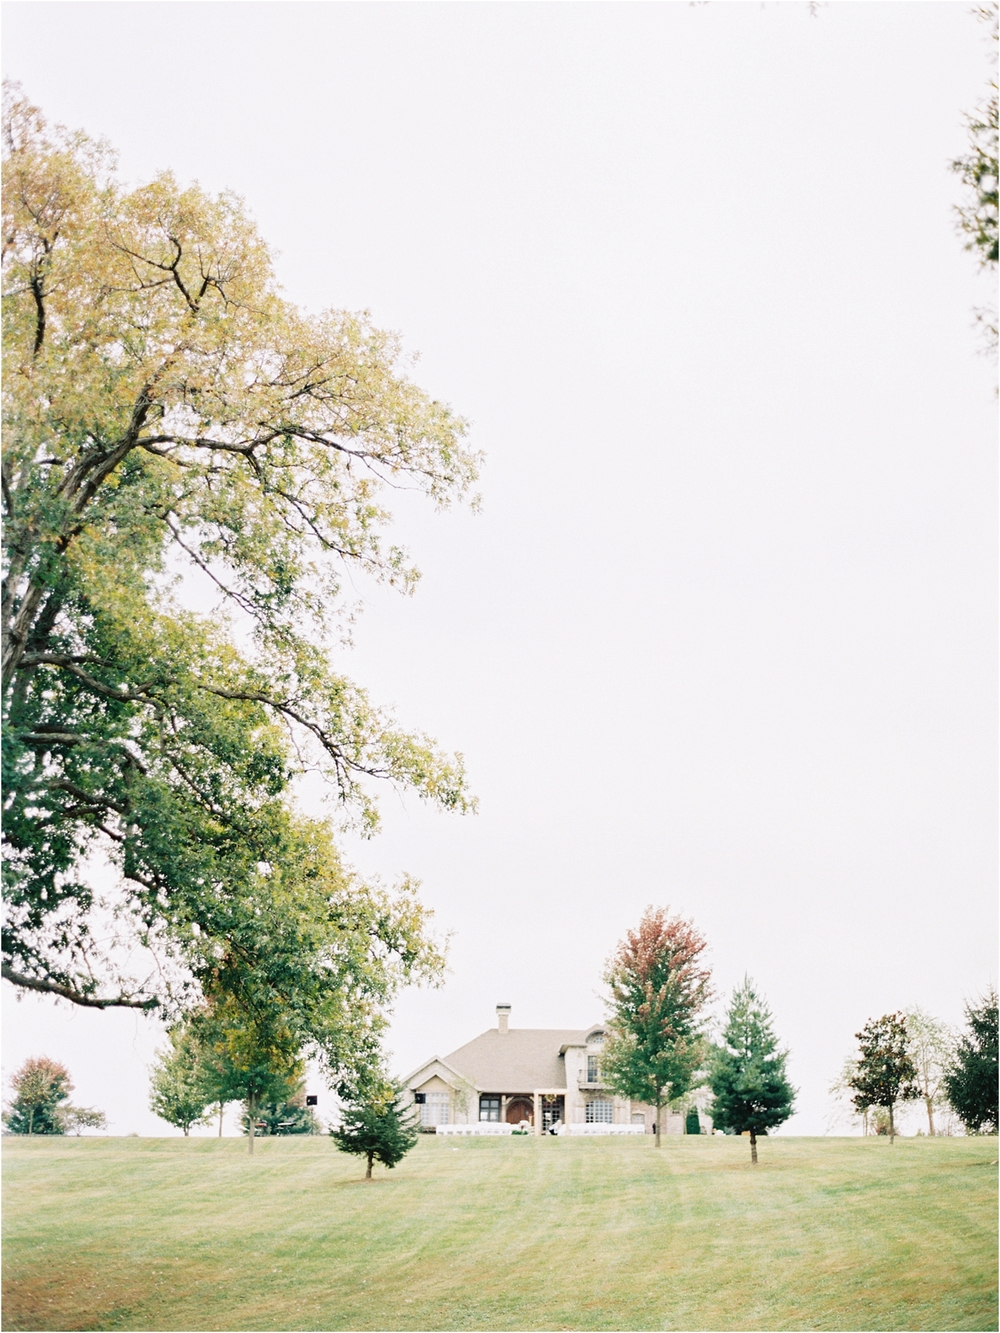 Springfield MO Wedding at Tuscan Hill - Jordan Brittley Photography (www.jordanbrittleyblog.com)